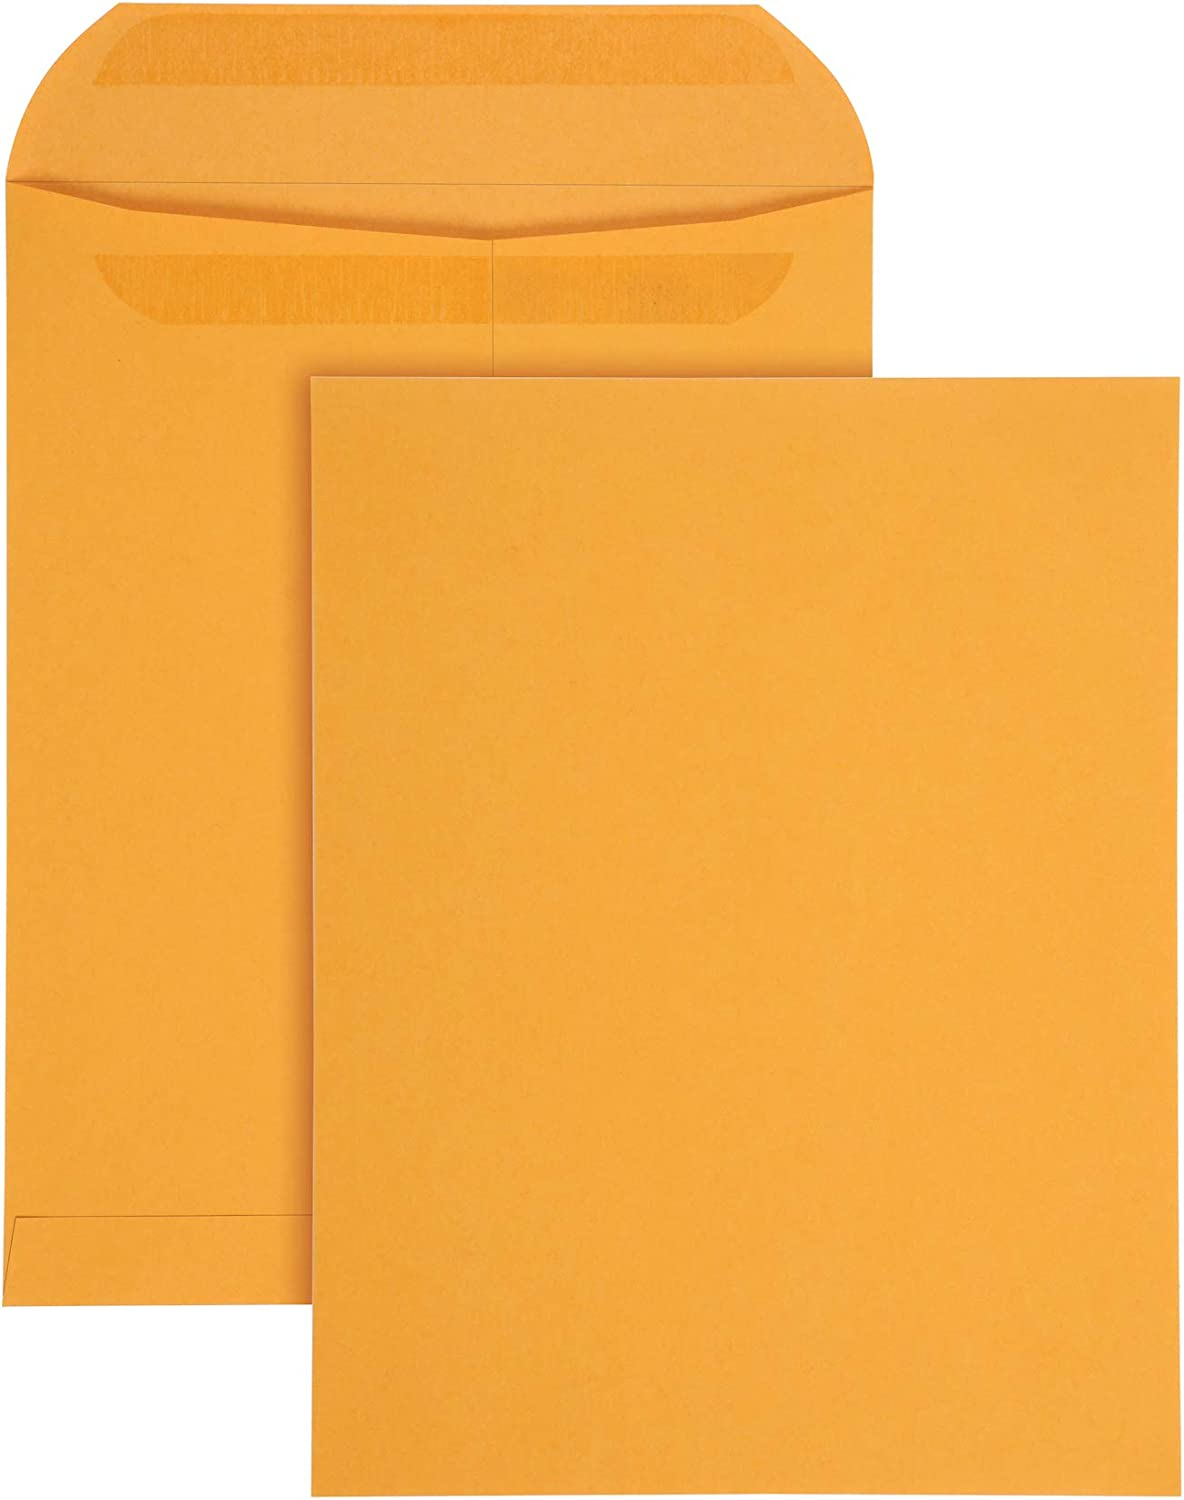 Columbian Clasp Envelopes, 10 x 13 Inches, Brown Kraft, 100 Per Box (CO797) : Manila Envelopes : Office Products